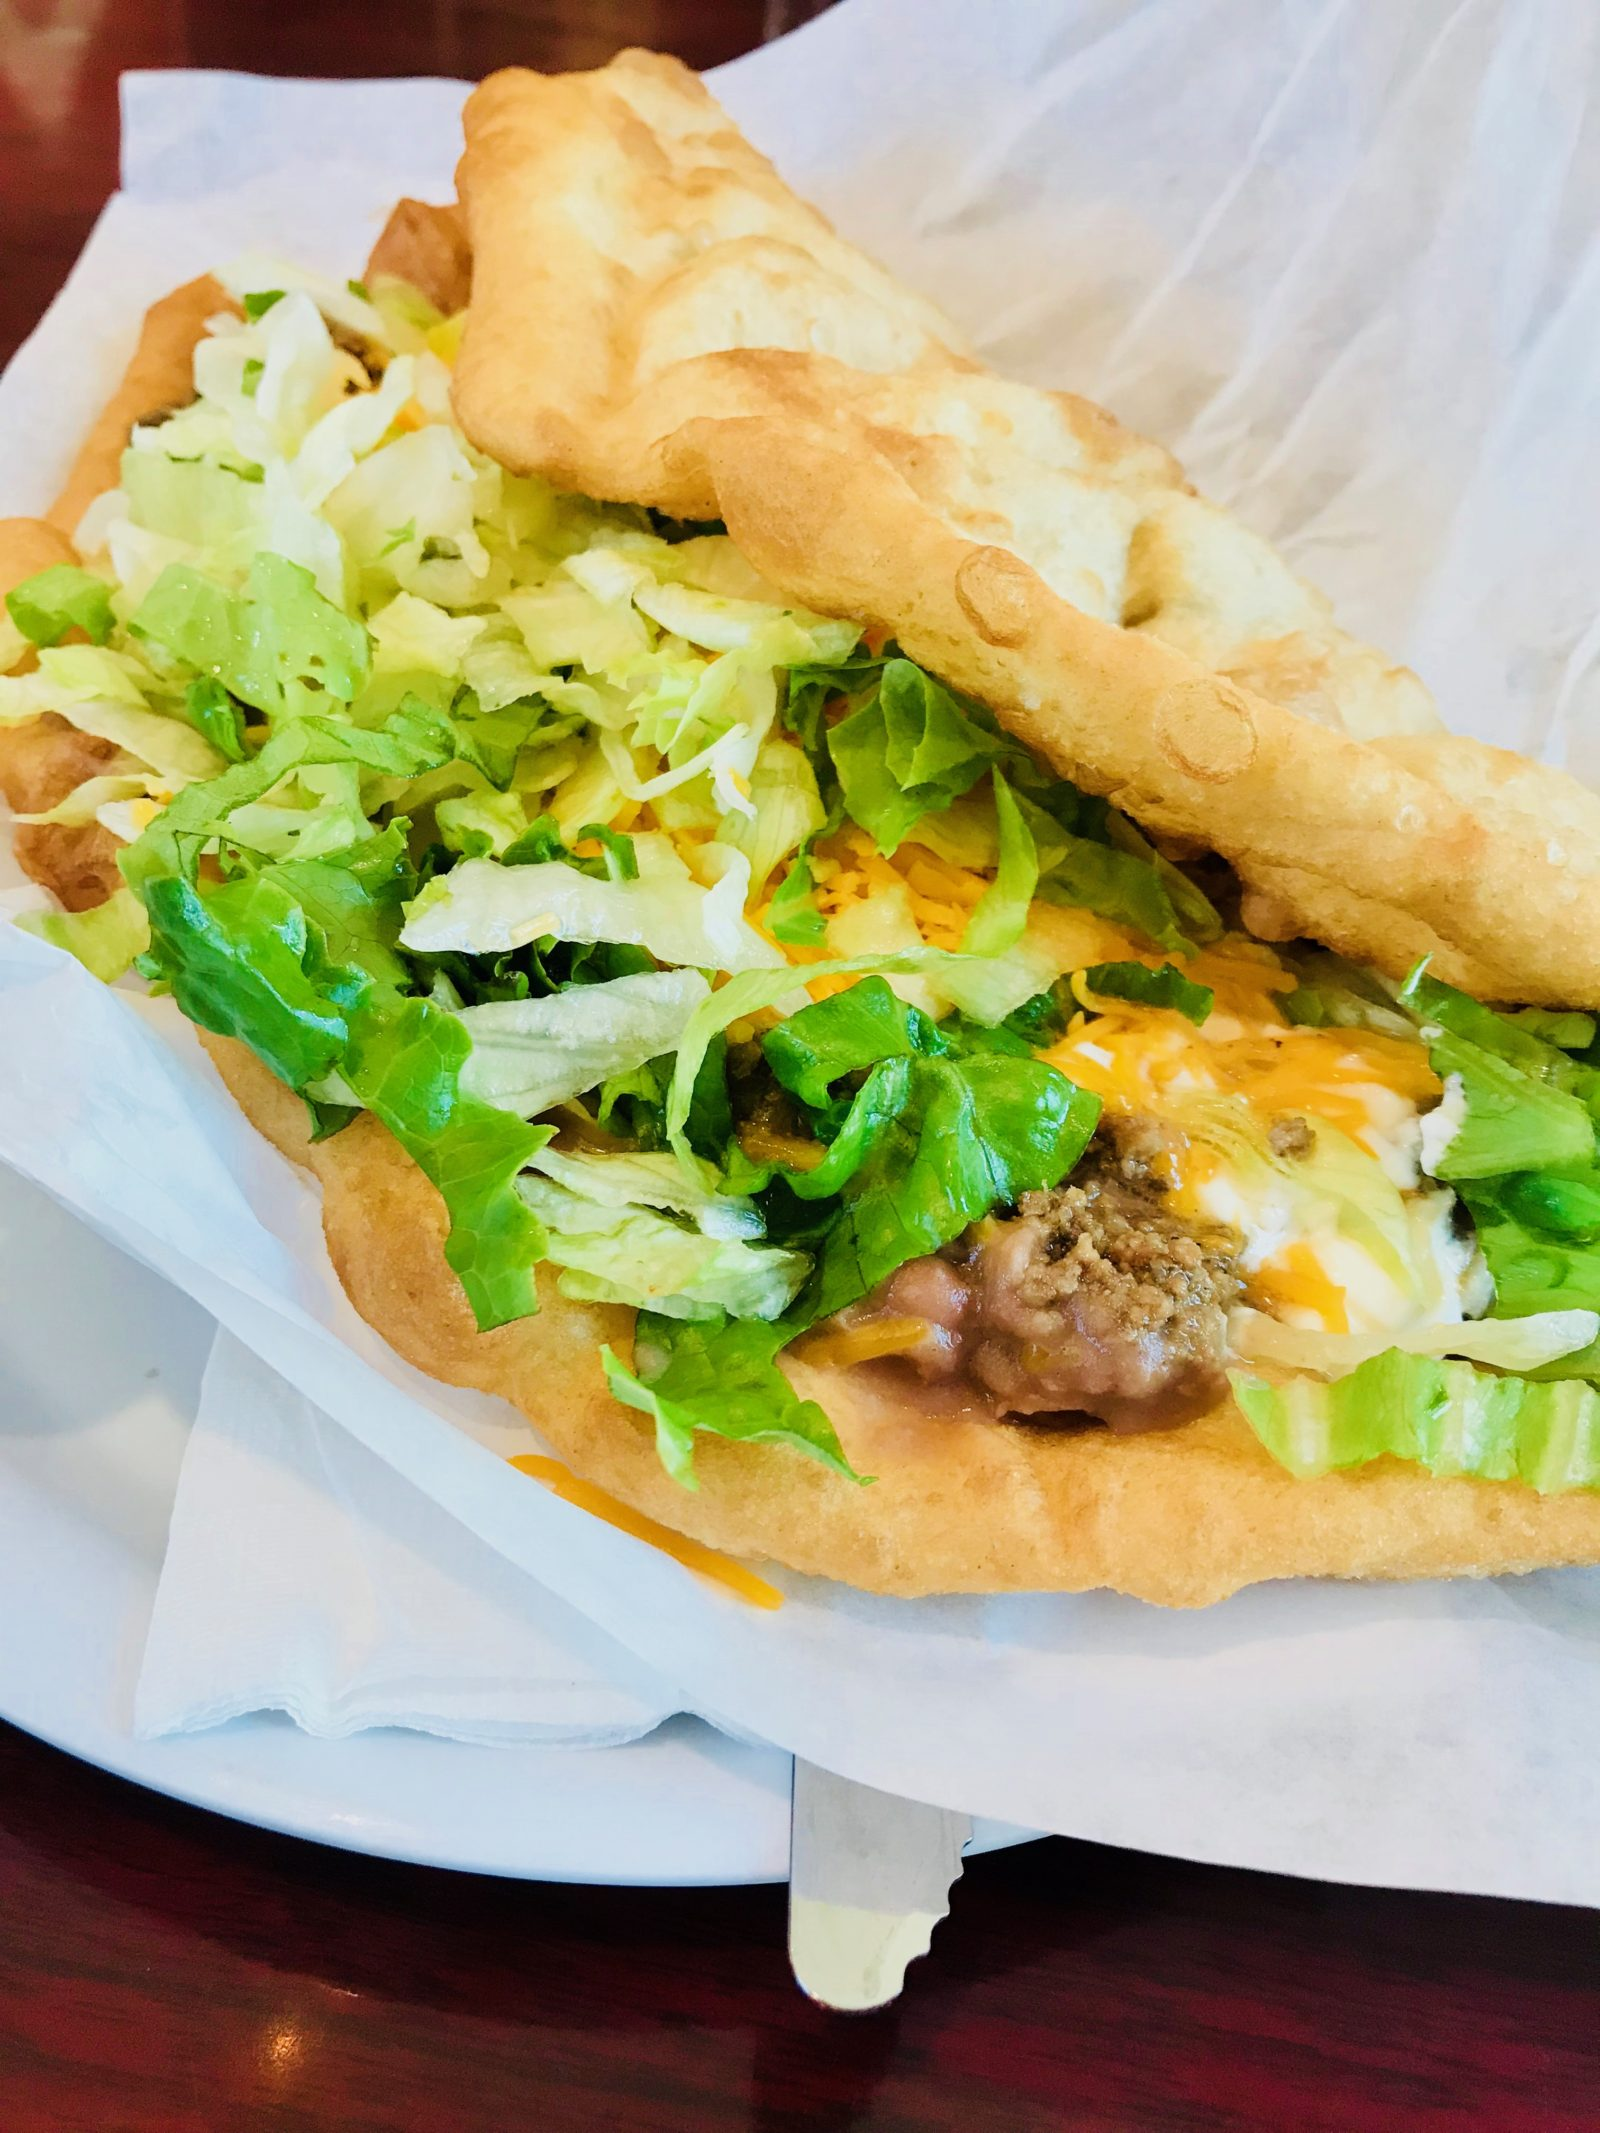 Pick of the Week - Fry Bread House - Ultimate Taco